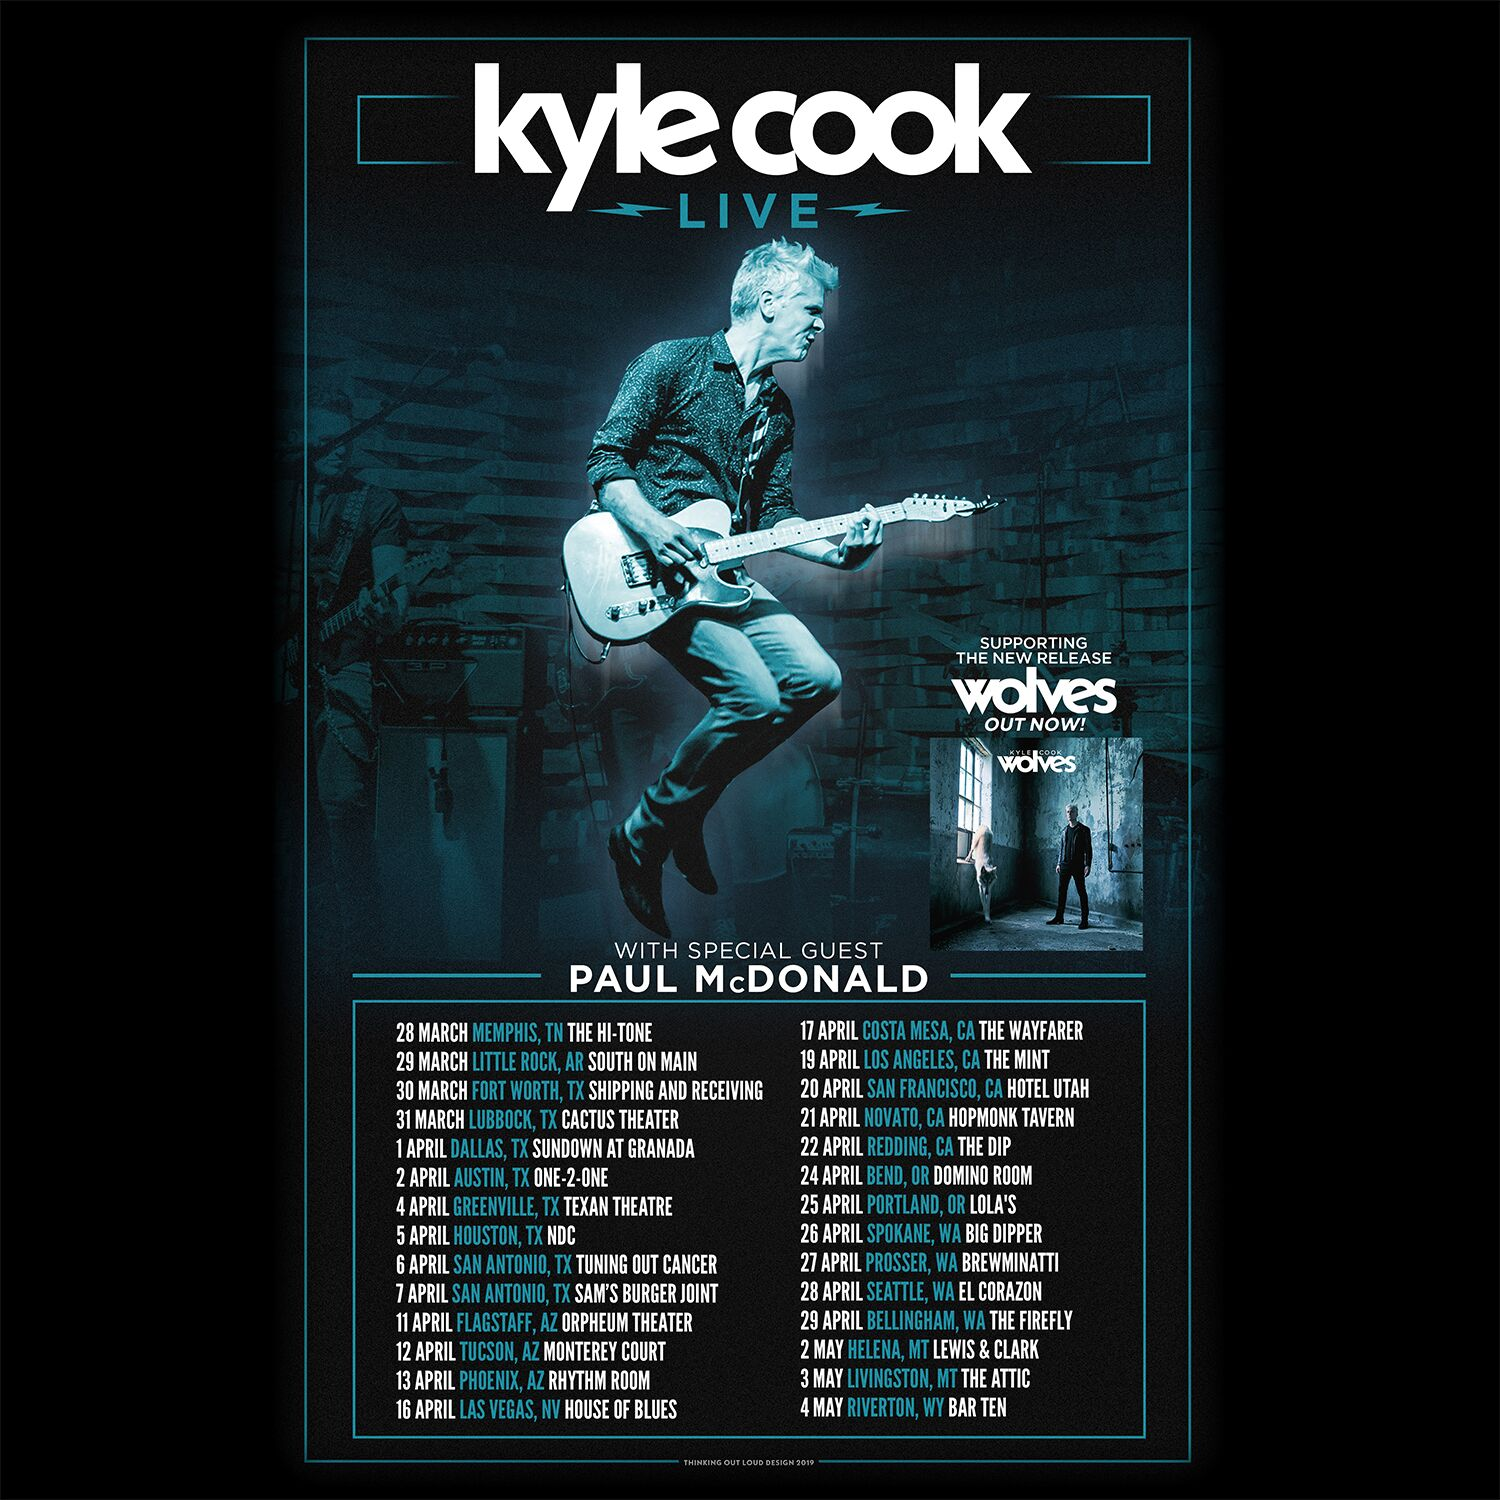 Image for KYLE COOK with special guest PAUL MCDONALD, All Ages